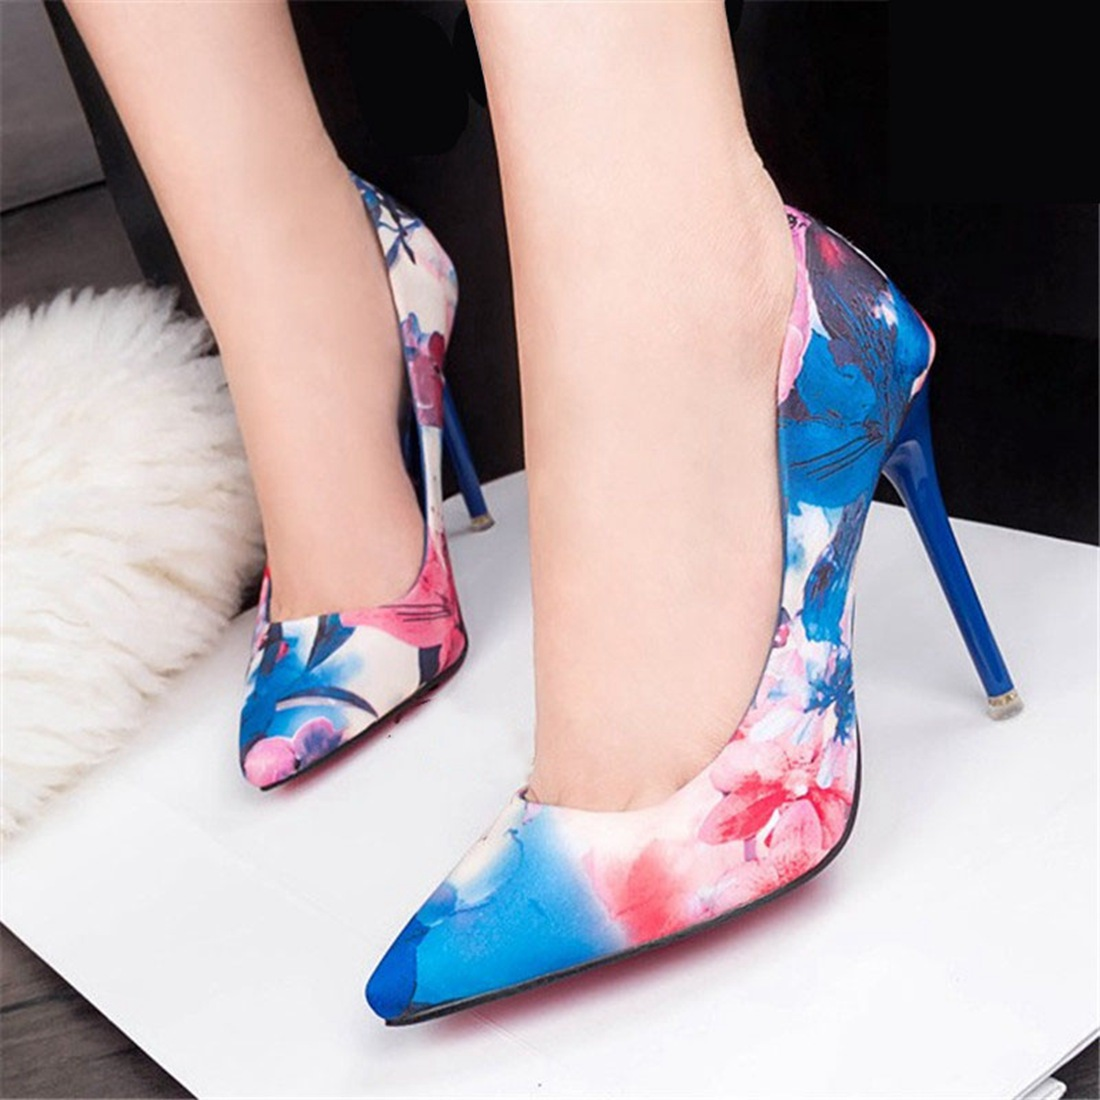 Flower Flora Pointed Toe Suede High Heels Fashion Sexy High Heel Shoes Women Pumps wedding shoes Pumps Nightclub Party Stiletto high heels european grand prix 2015 new winter bride wedding high heels nightclub wild pointed high heeled shoes women pumps page 6